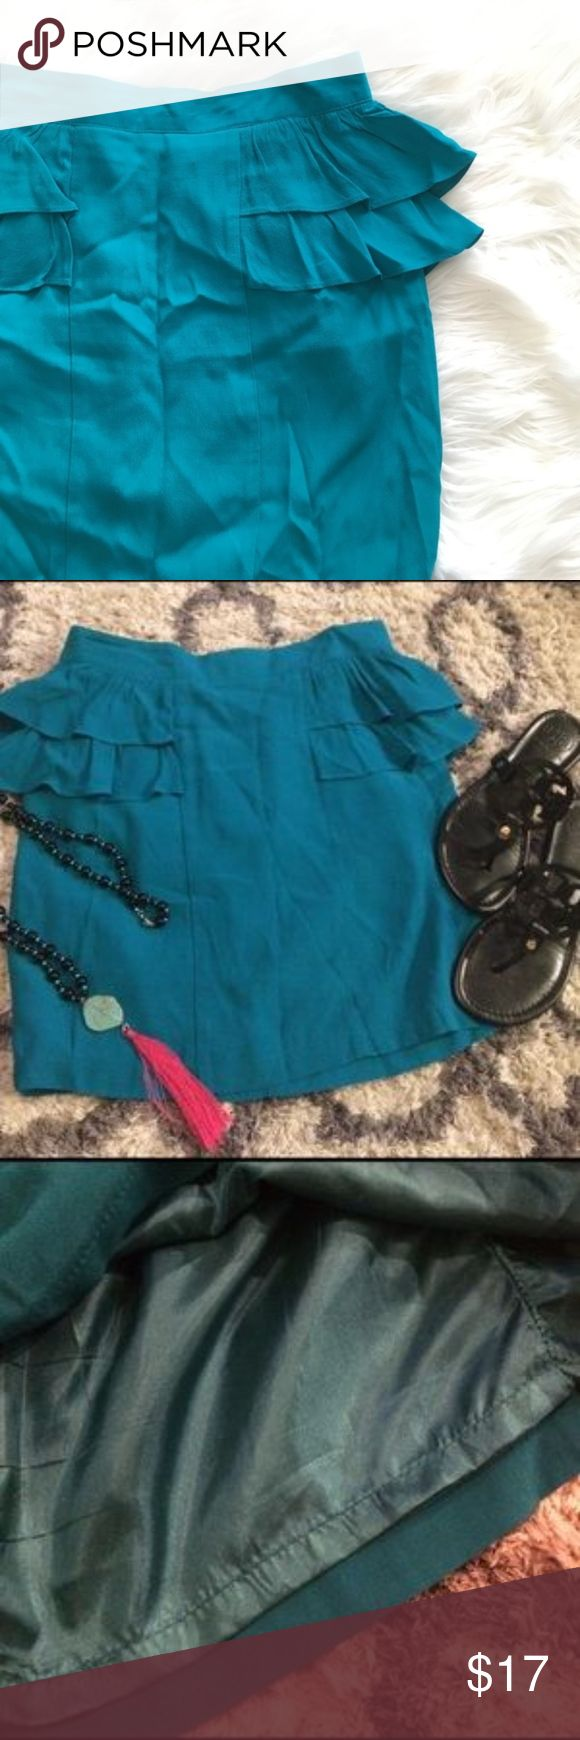 Teal Mini Skirt Ruffles Teal mini skirt. Fully lined. Ruffles in side and back. Zipper/clasp closure. Polyester/rayon. Approximately 28 inch waist. 16 inch from waist to bottom hem. Accessories not included from picture. Super cute and great for a night out! Forever 21 Skirts Mini